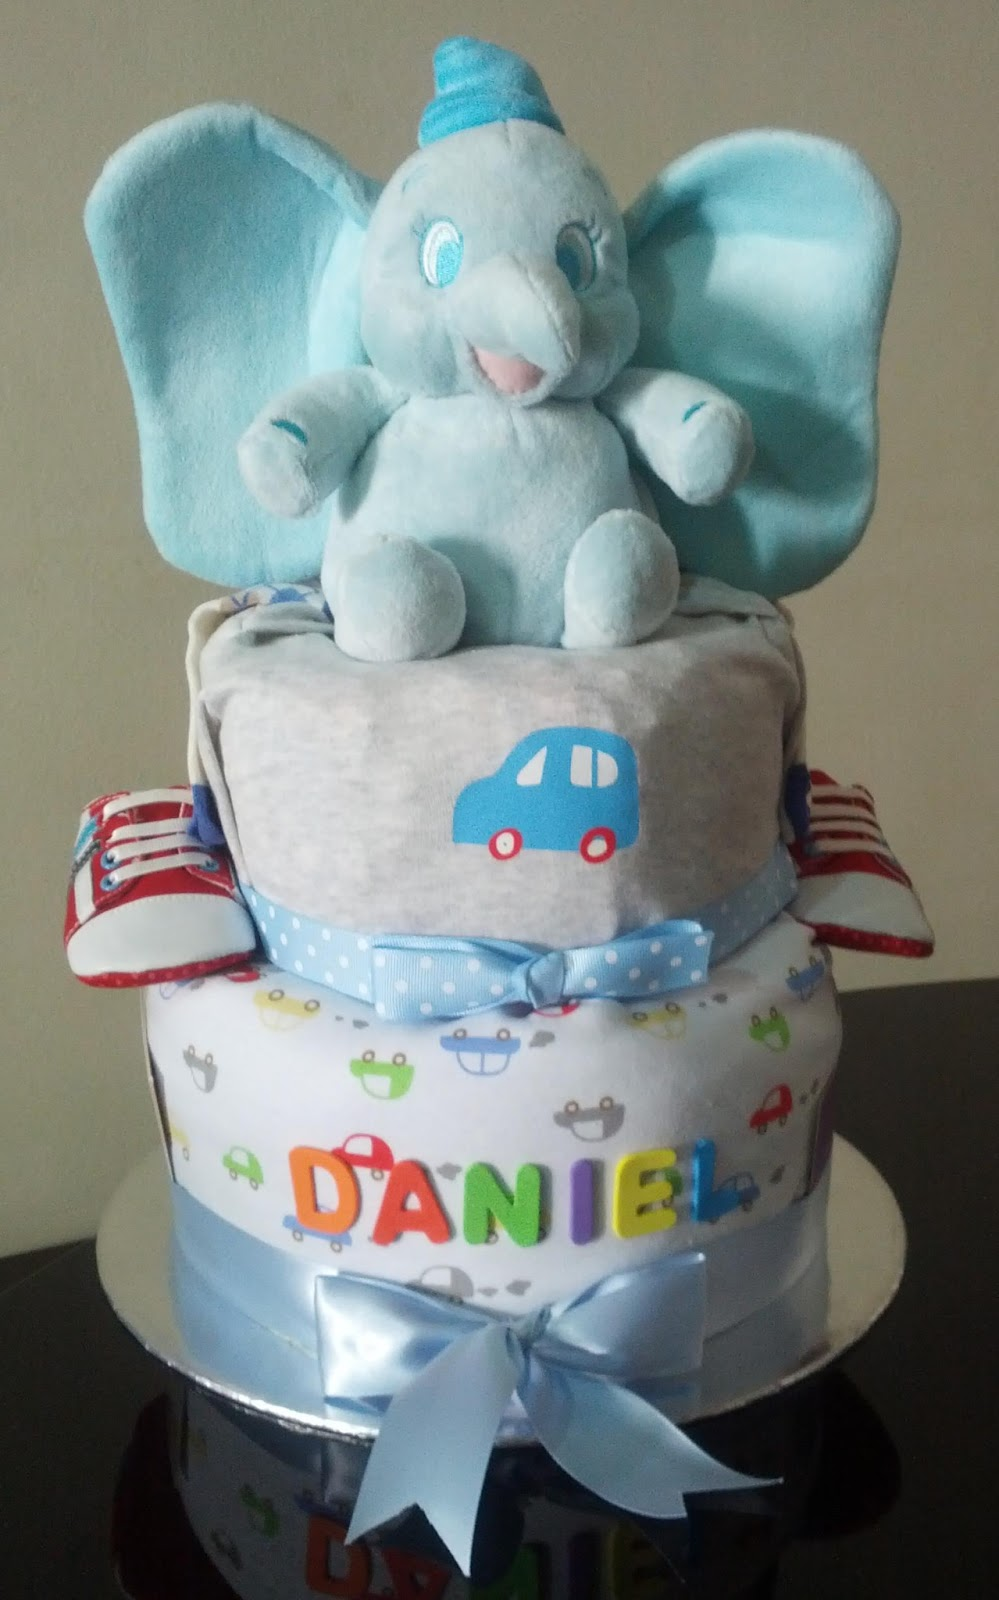 Baby Showers Gifts: Our Diaper Cakes